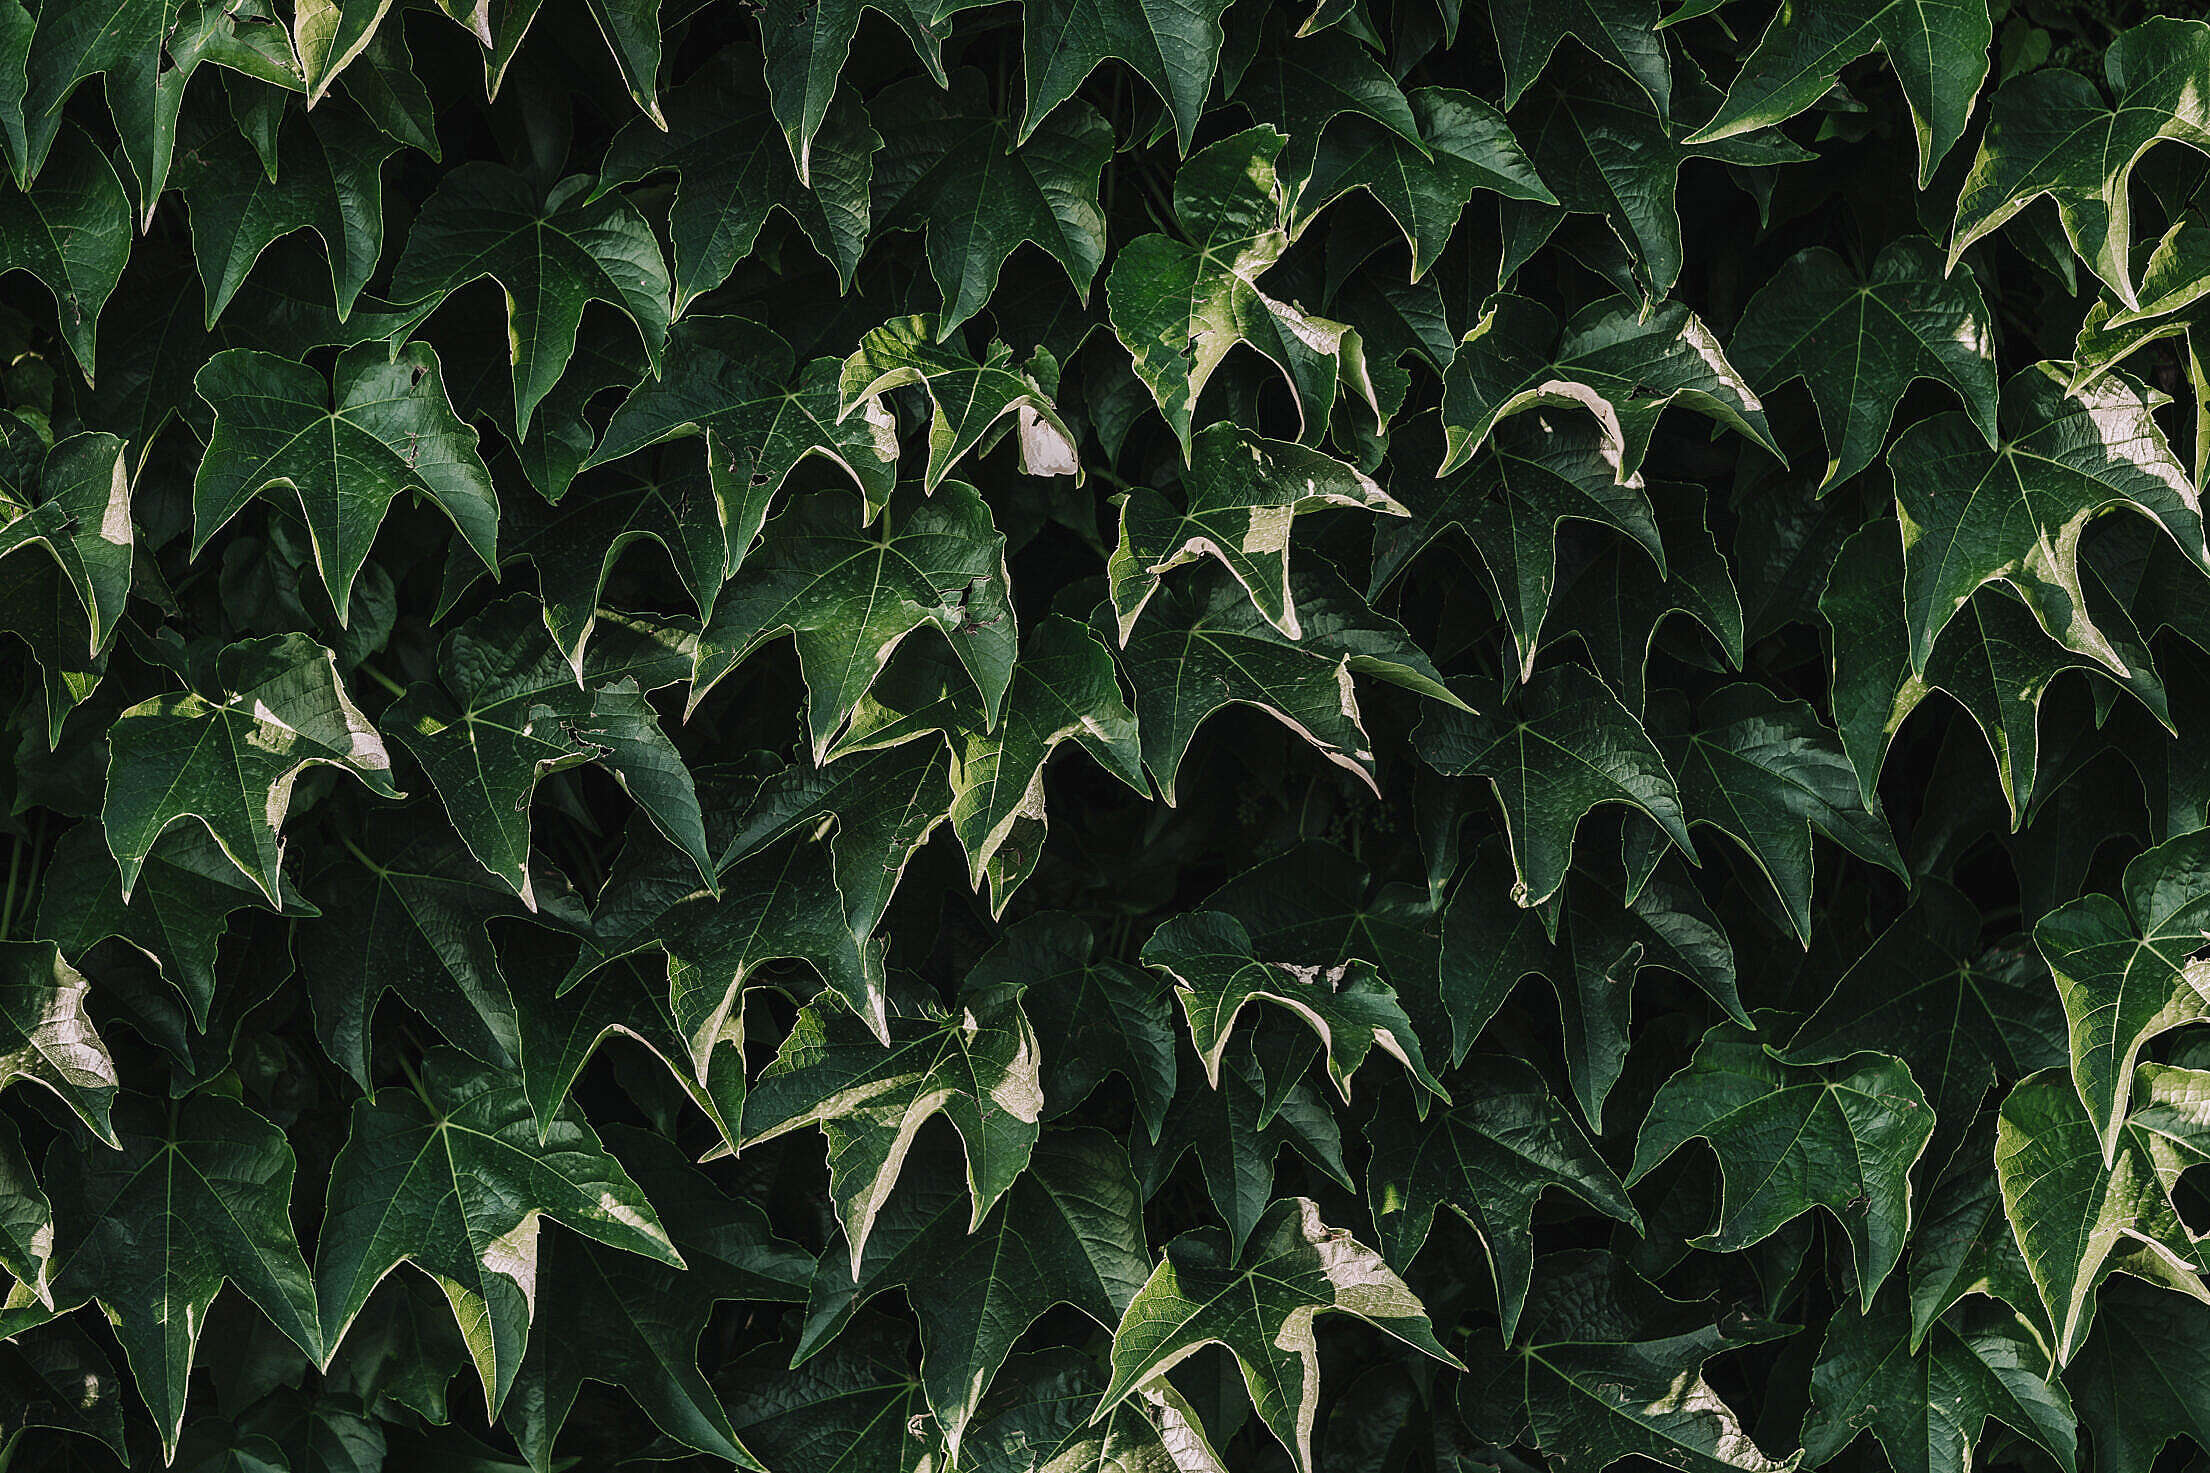 Ivy on The Wall Free Stock Photo